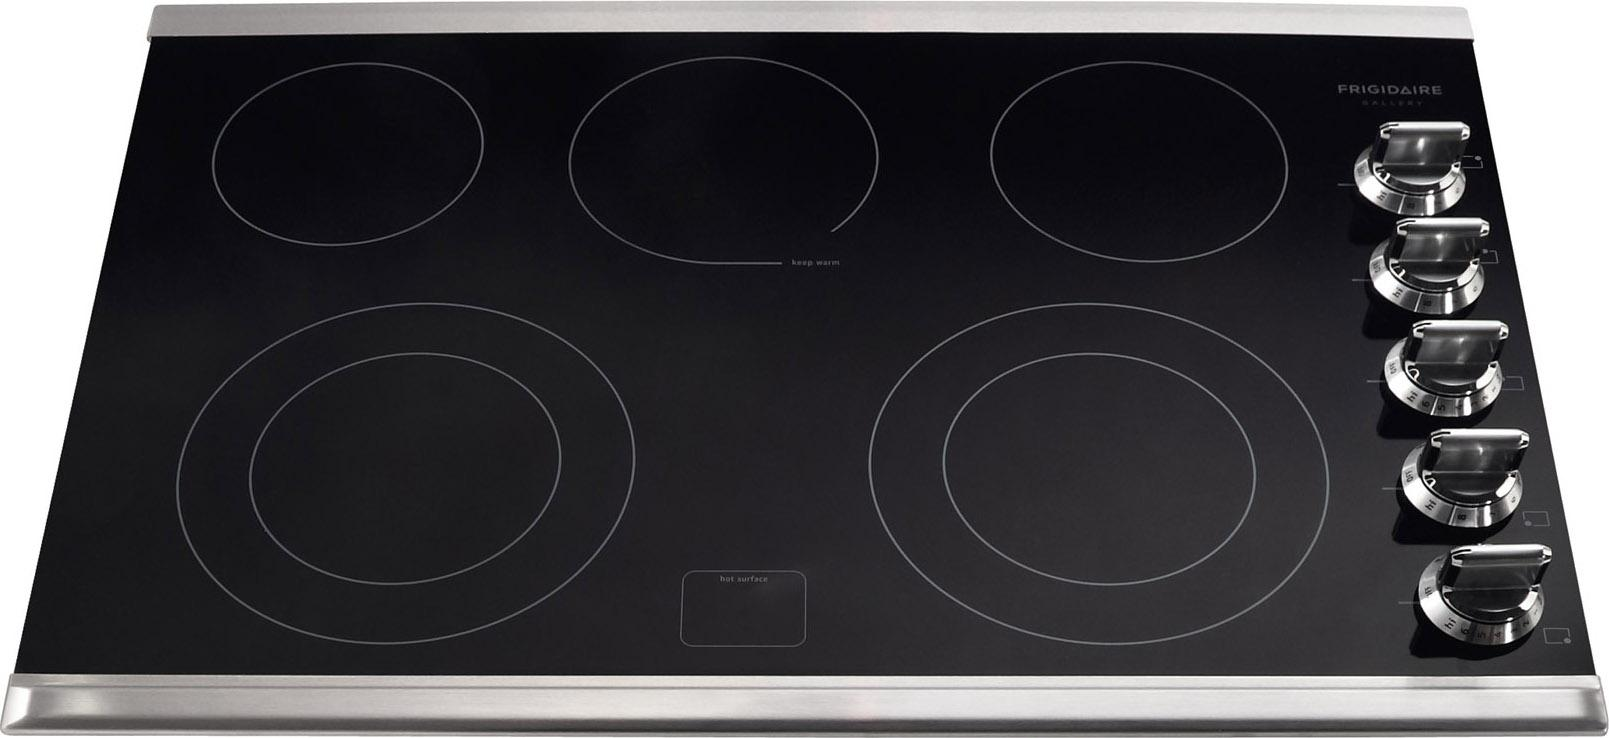 "Frigidaire Frigidaire Gallery Electric Cooktops 30"" Built-In Electric Cooktop - Item Number: FGEC3067MS"